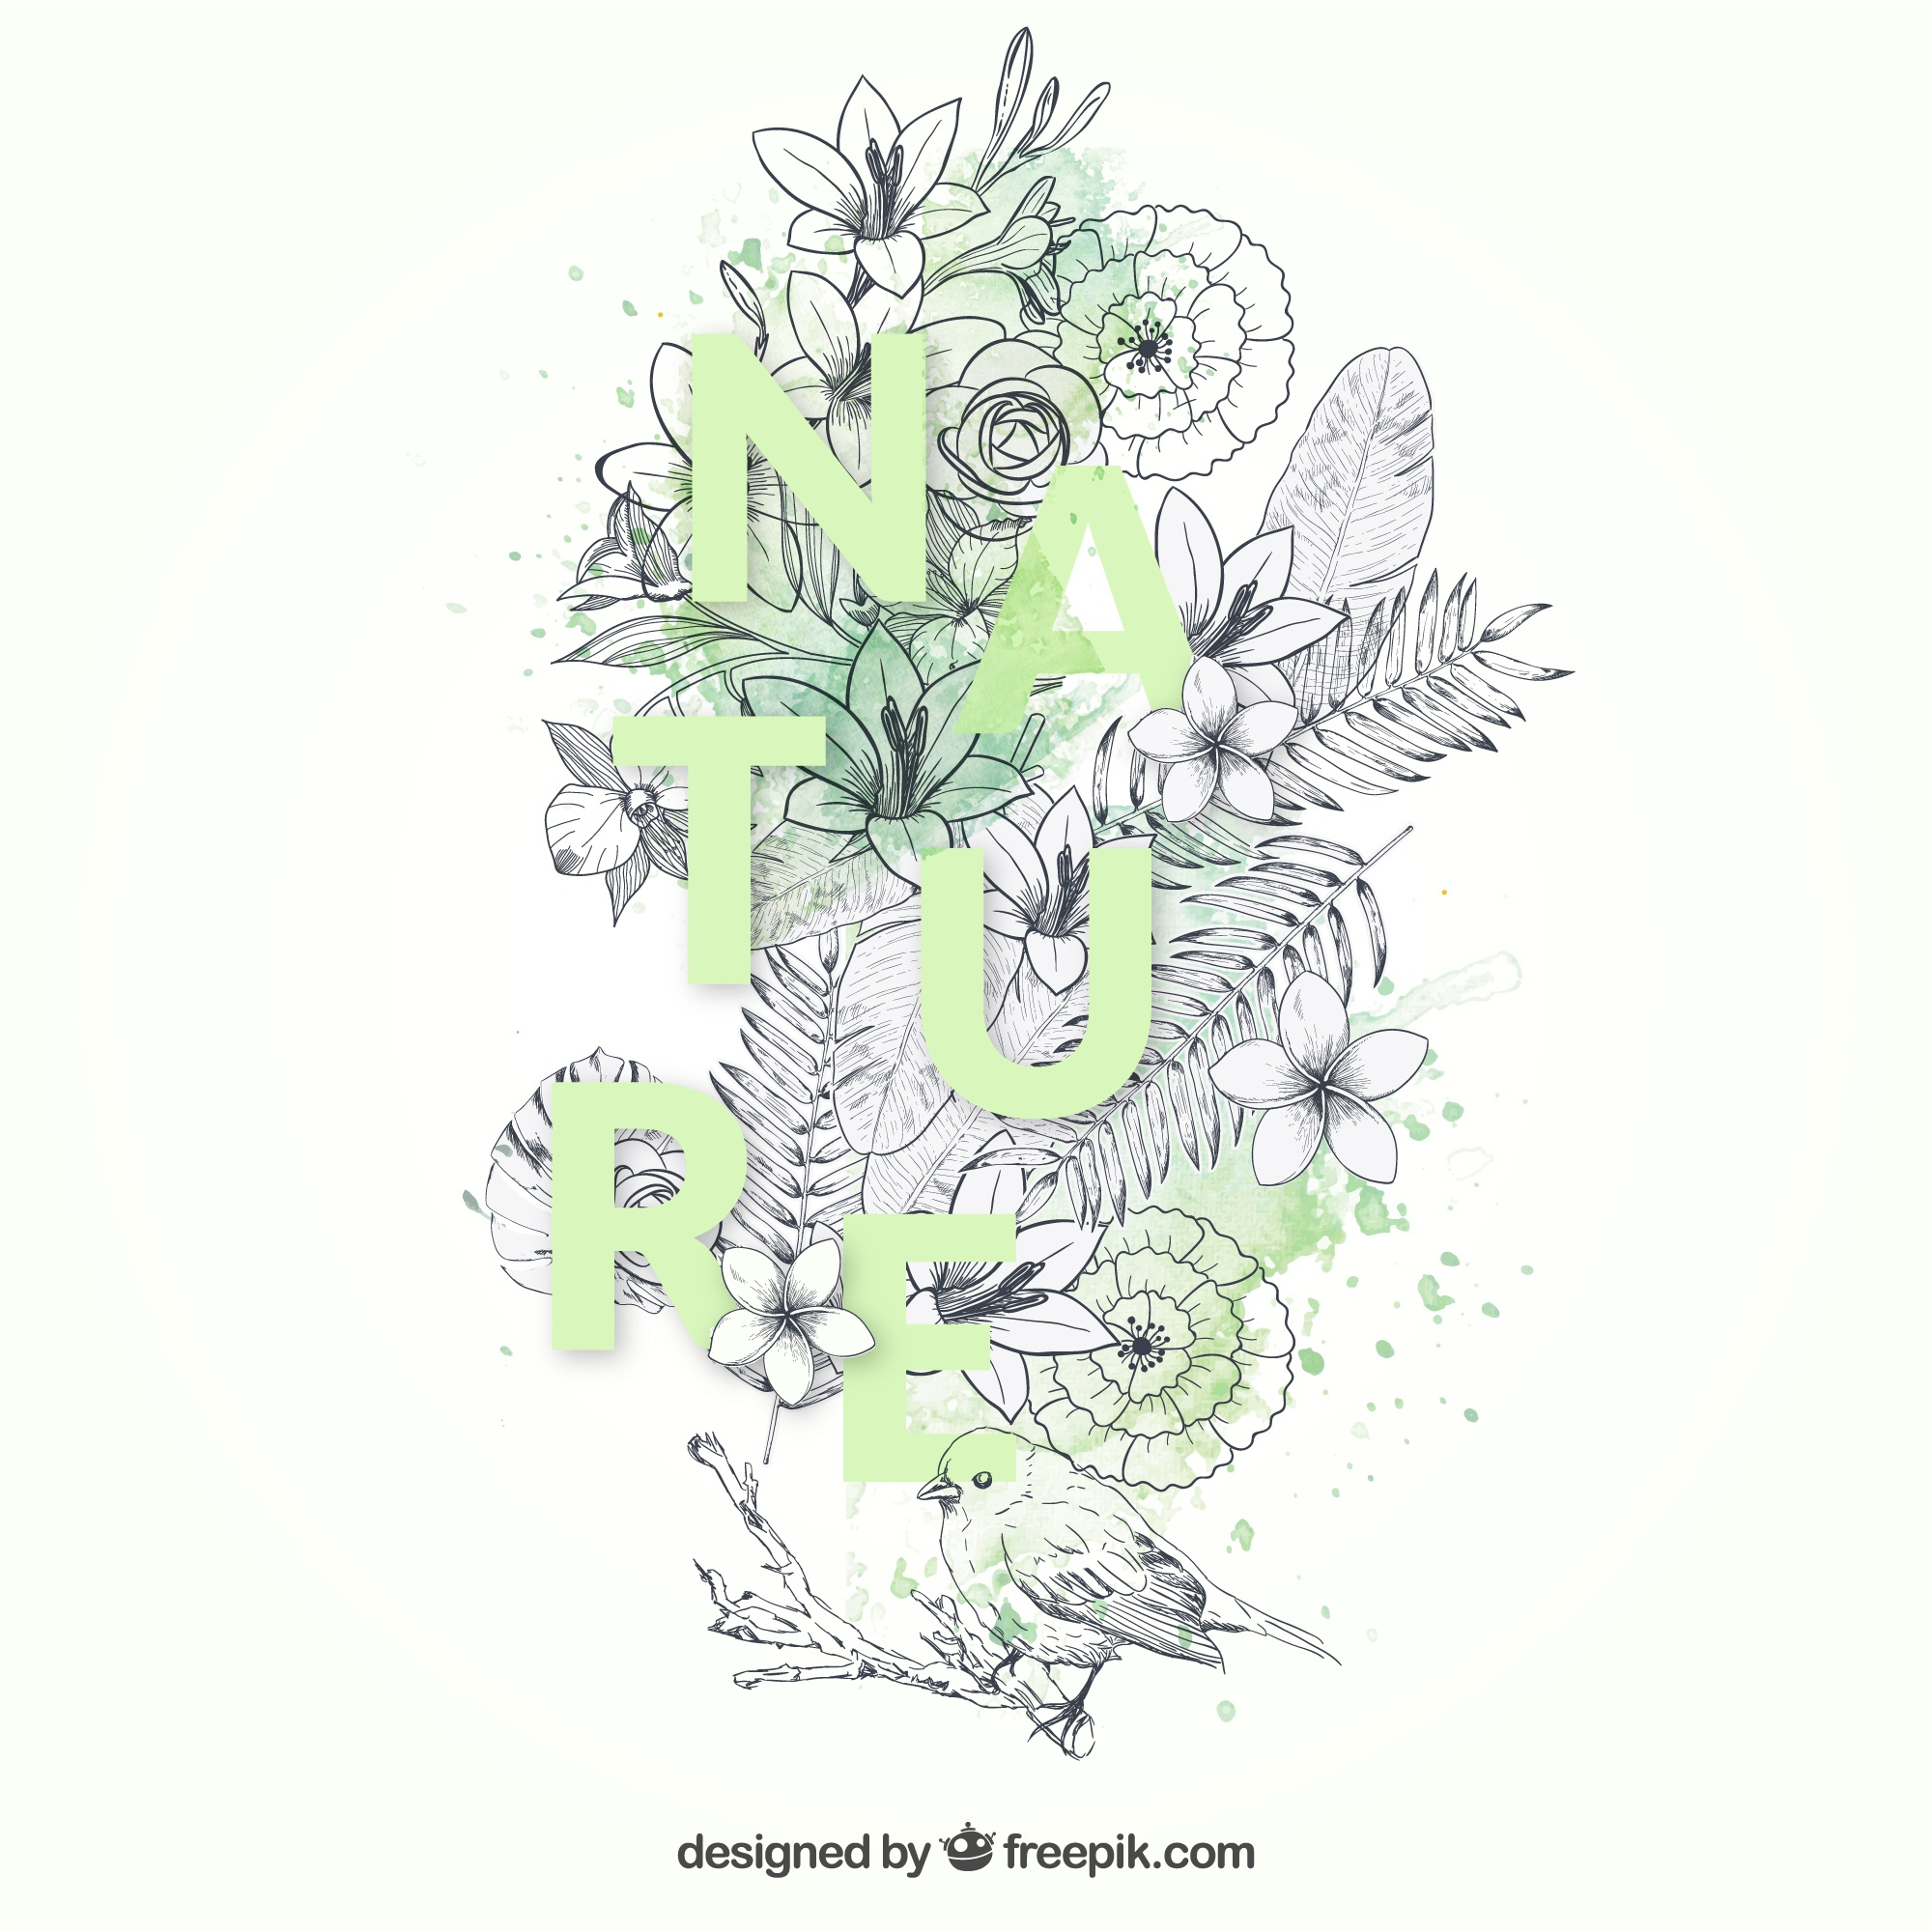 Hand drawn nature background